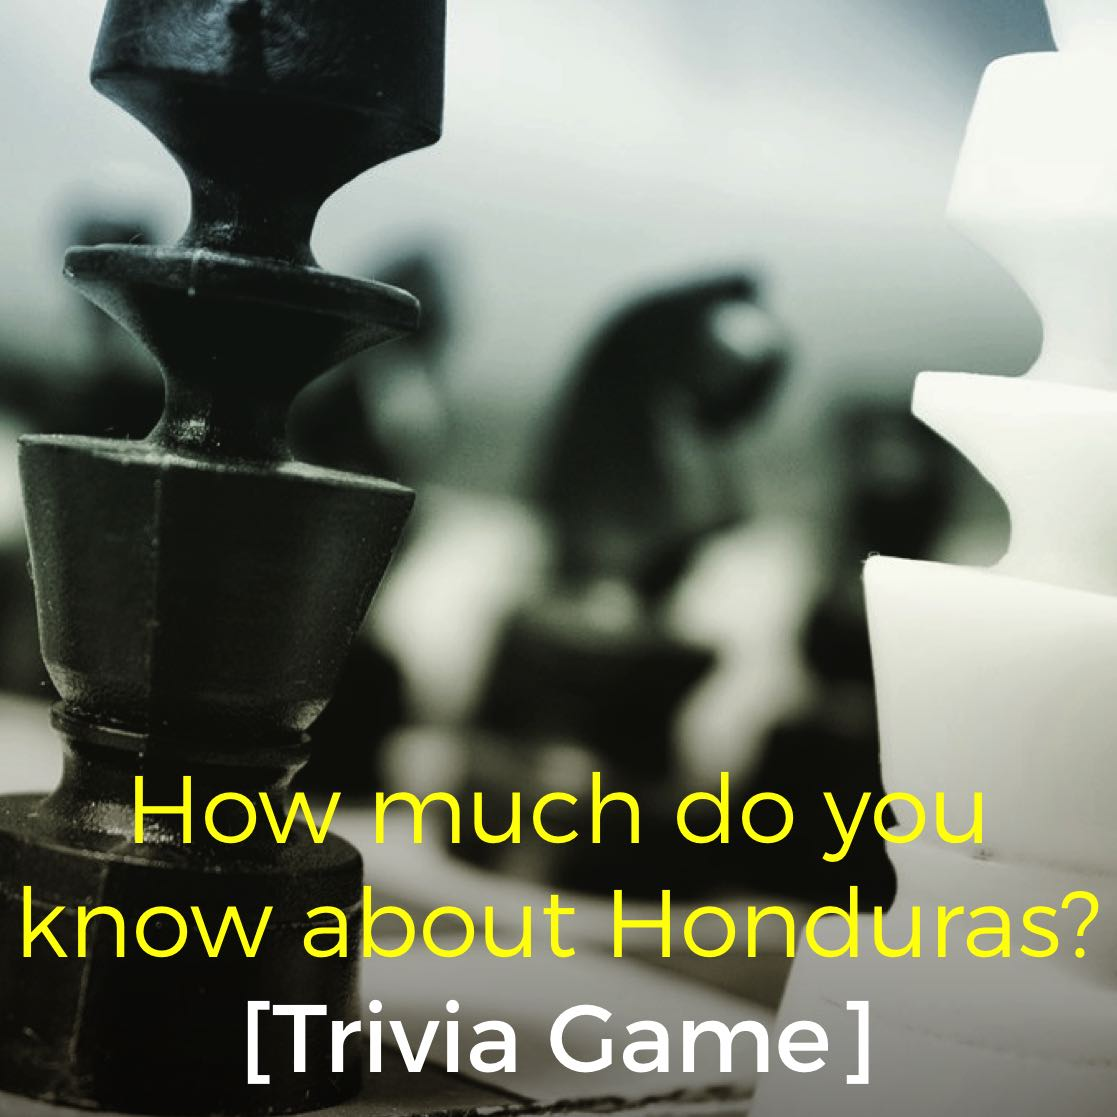 Episode 31: How much do you know about Honduras? [Trivia Game]